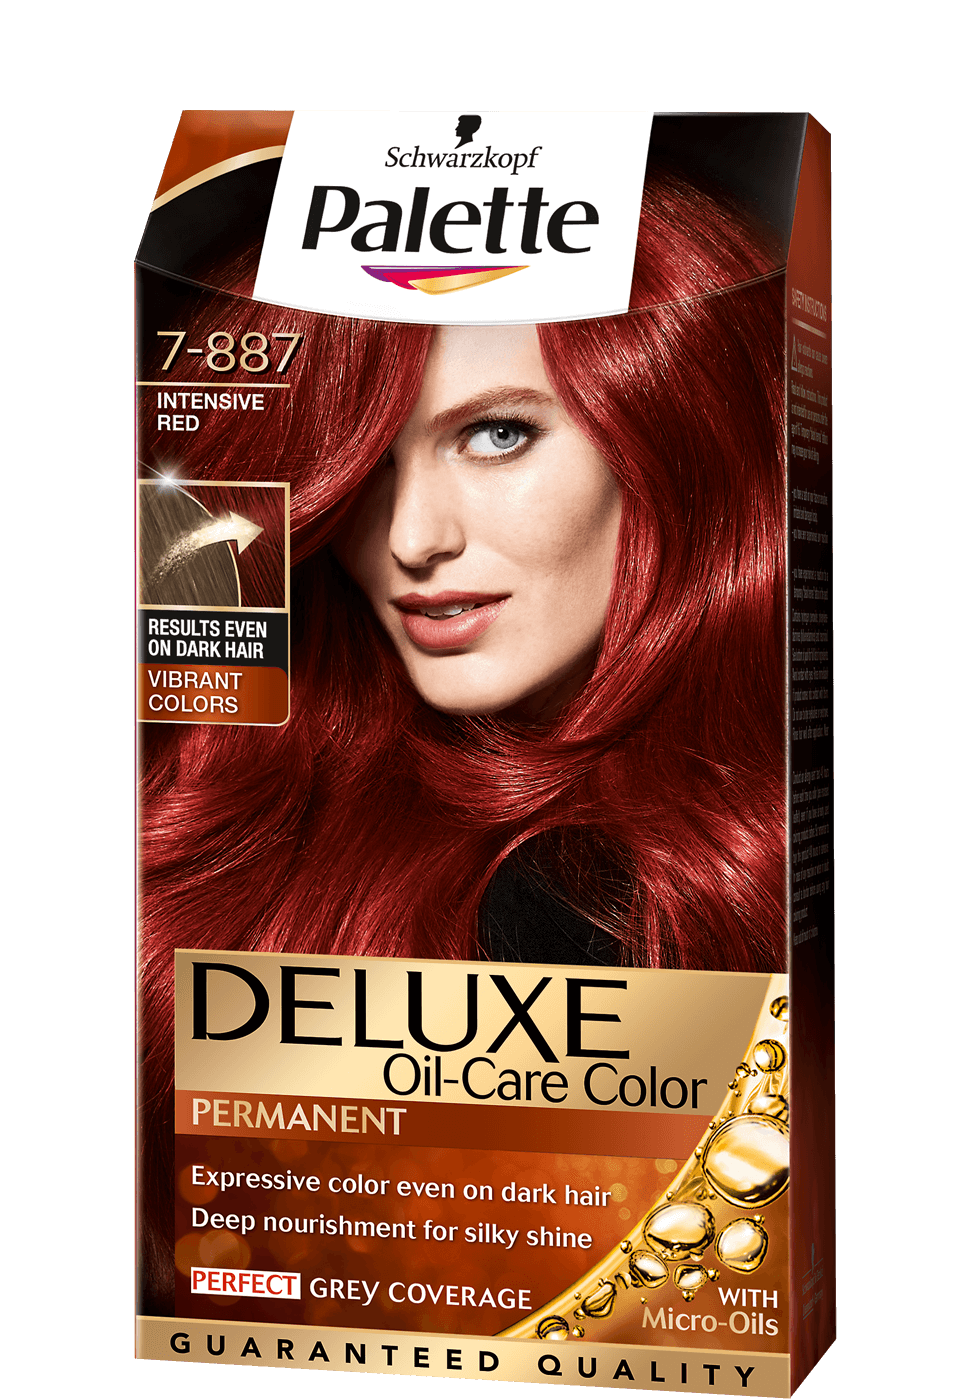 palette_com_deluxe_vibrantcolors_7-887_intensive_red_970x1400